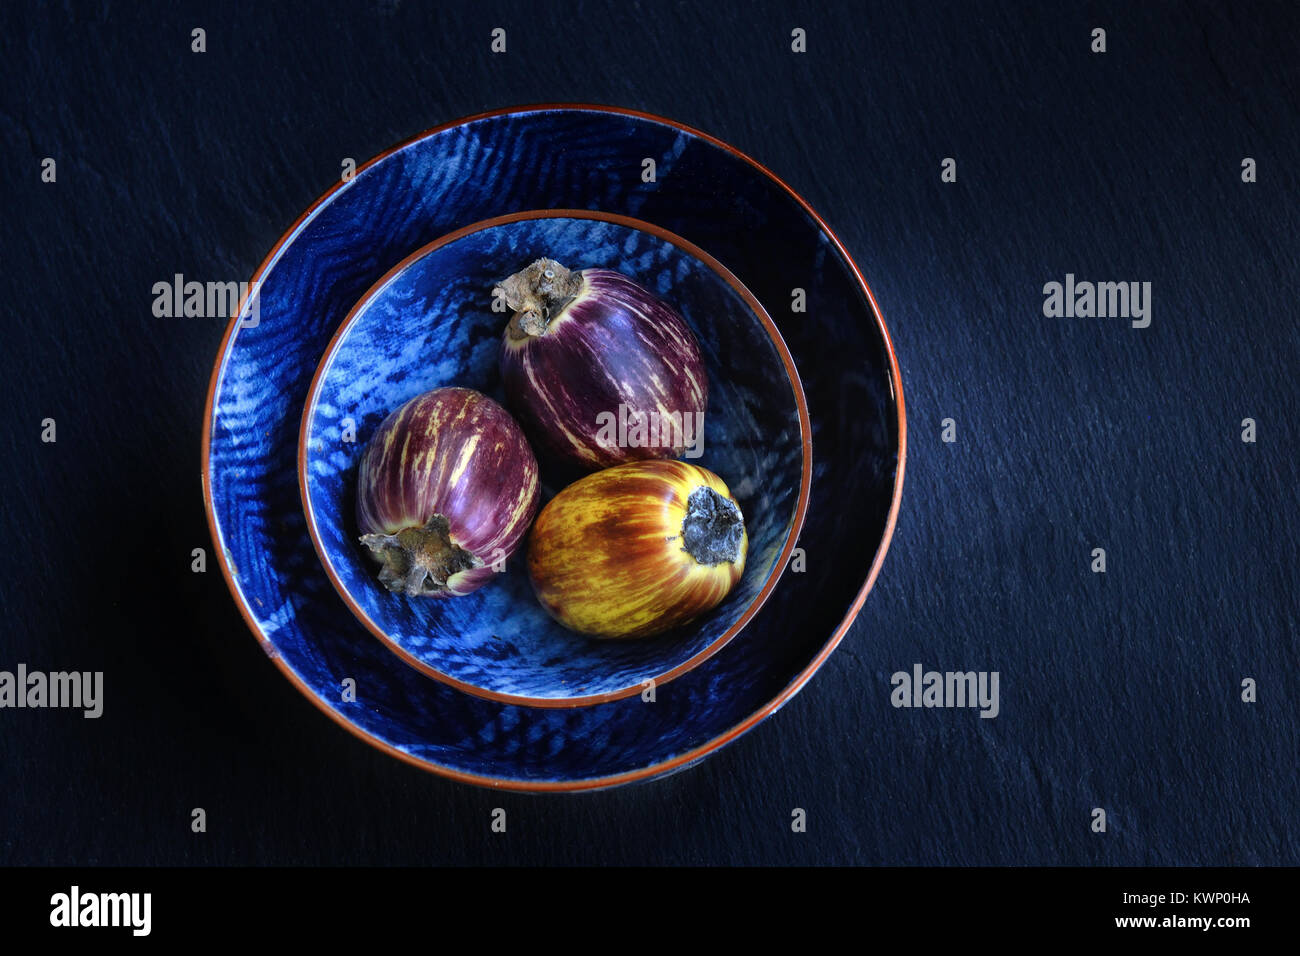 Healthy and fresh purple eggplants in a bwols over dark stone background. Vegetarian food, health or cooking concept, - Stock Image